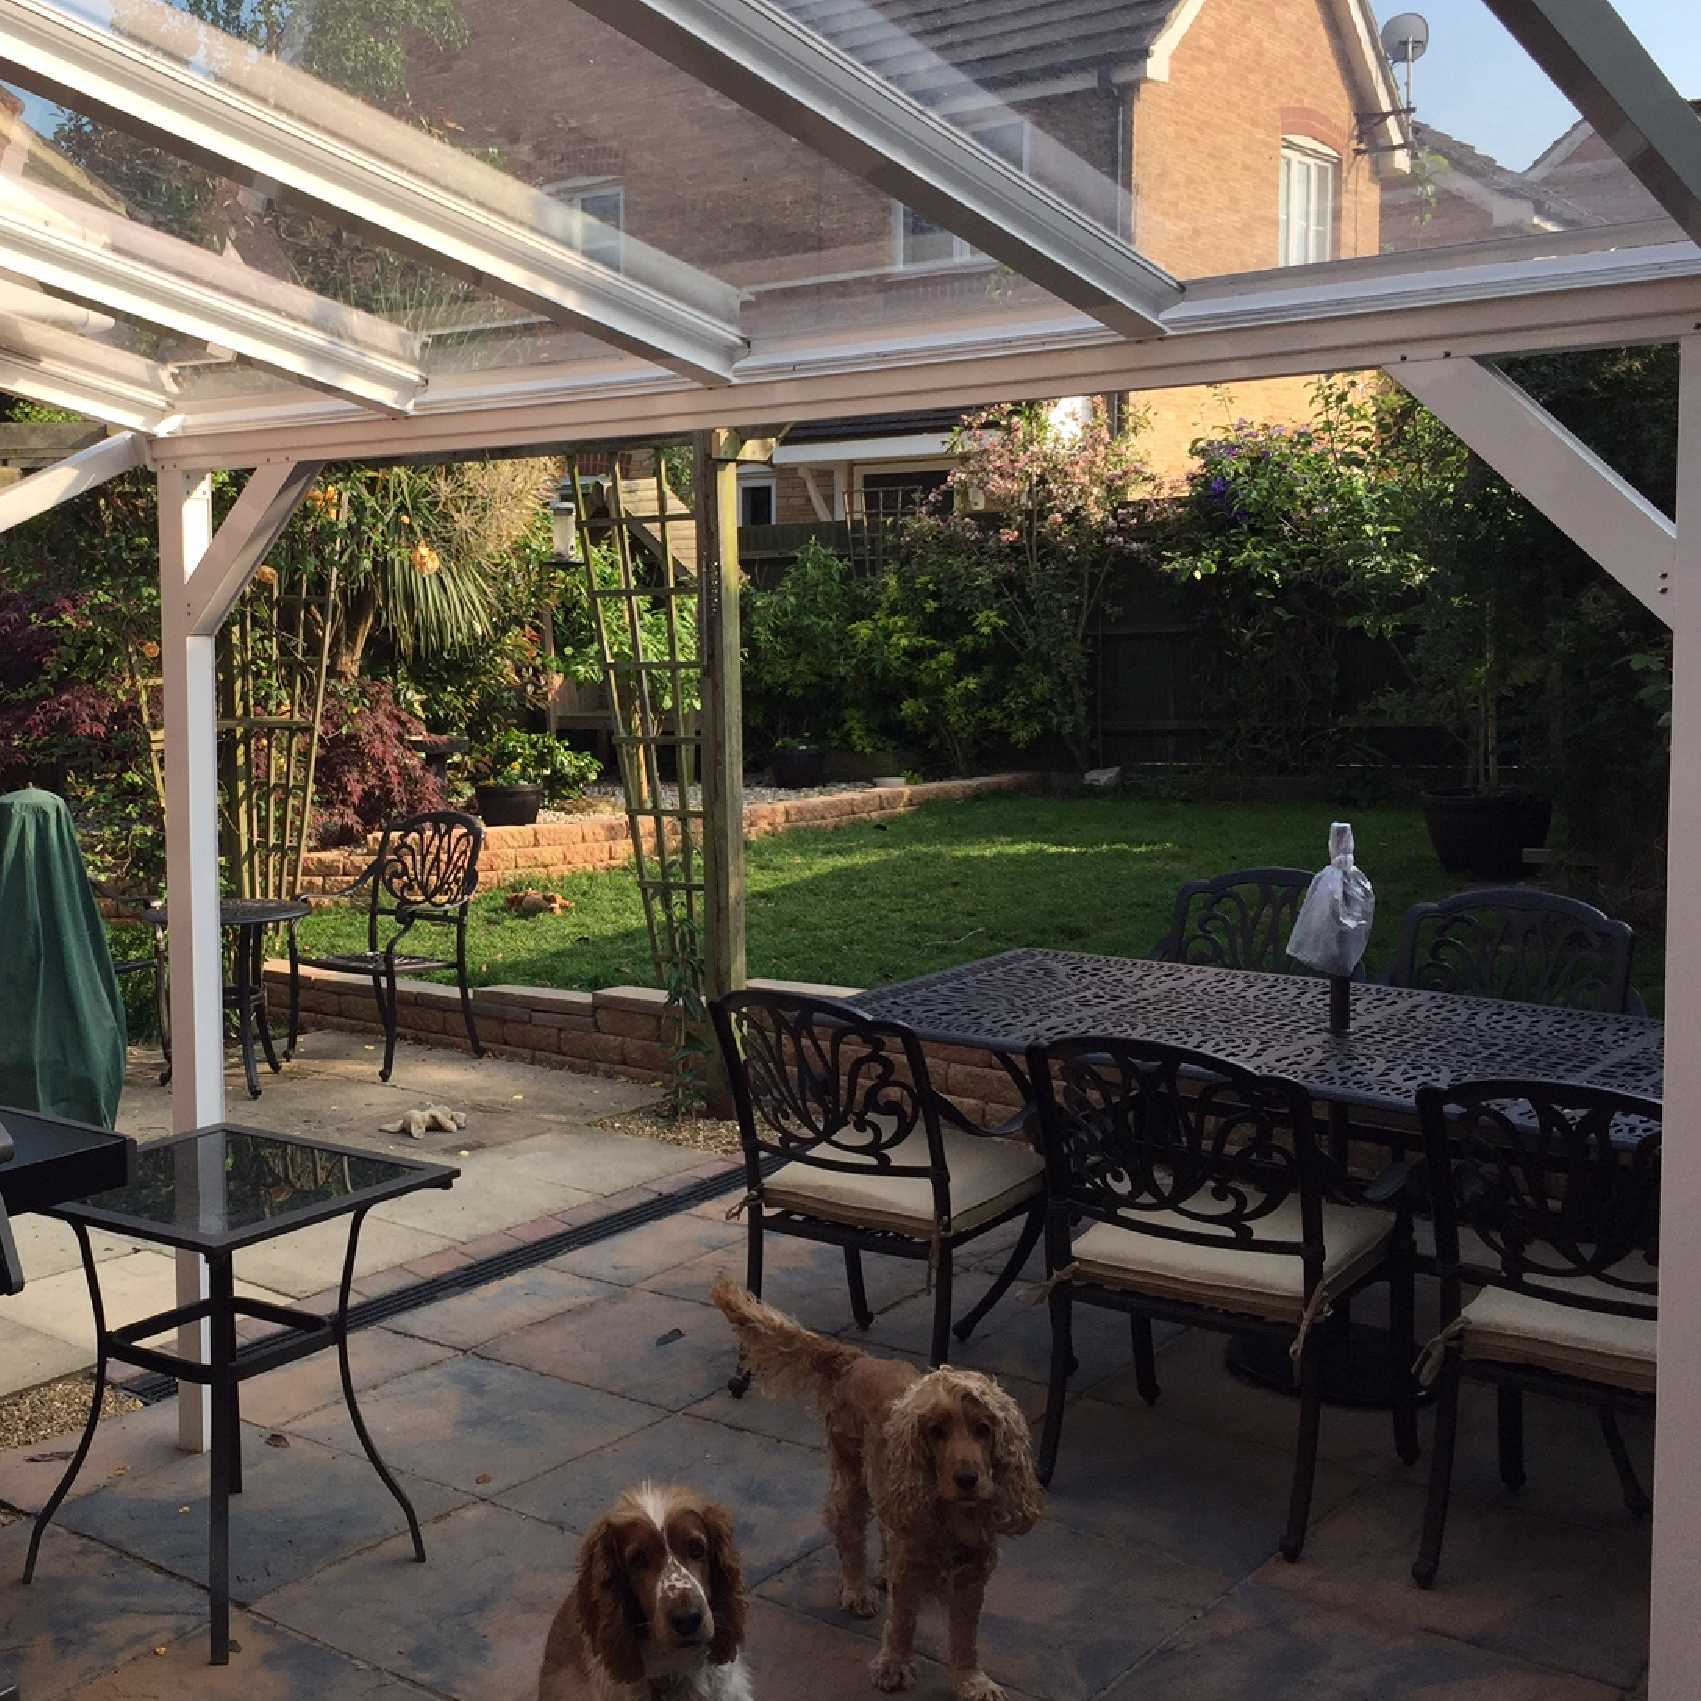 Affordable Omega Smart Lean-To Canopy with 6mm Glass Clear Plate Polycarbonate Glazing - 4.2m (W) x 3.0m (P), (3) Supporting Posts